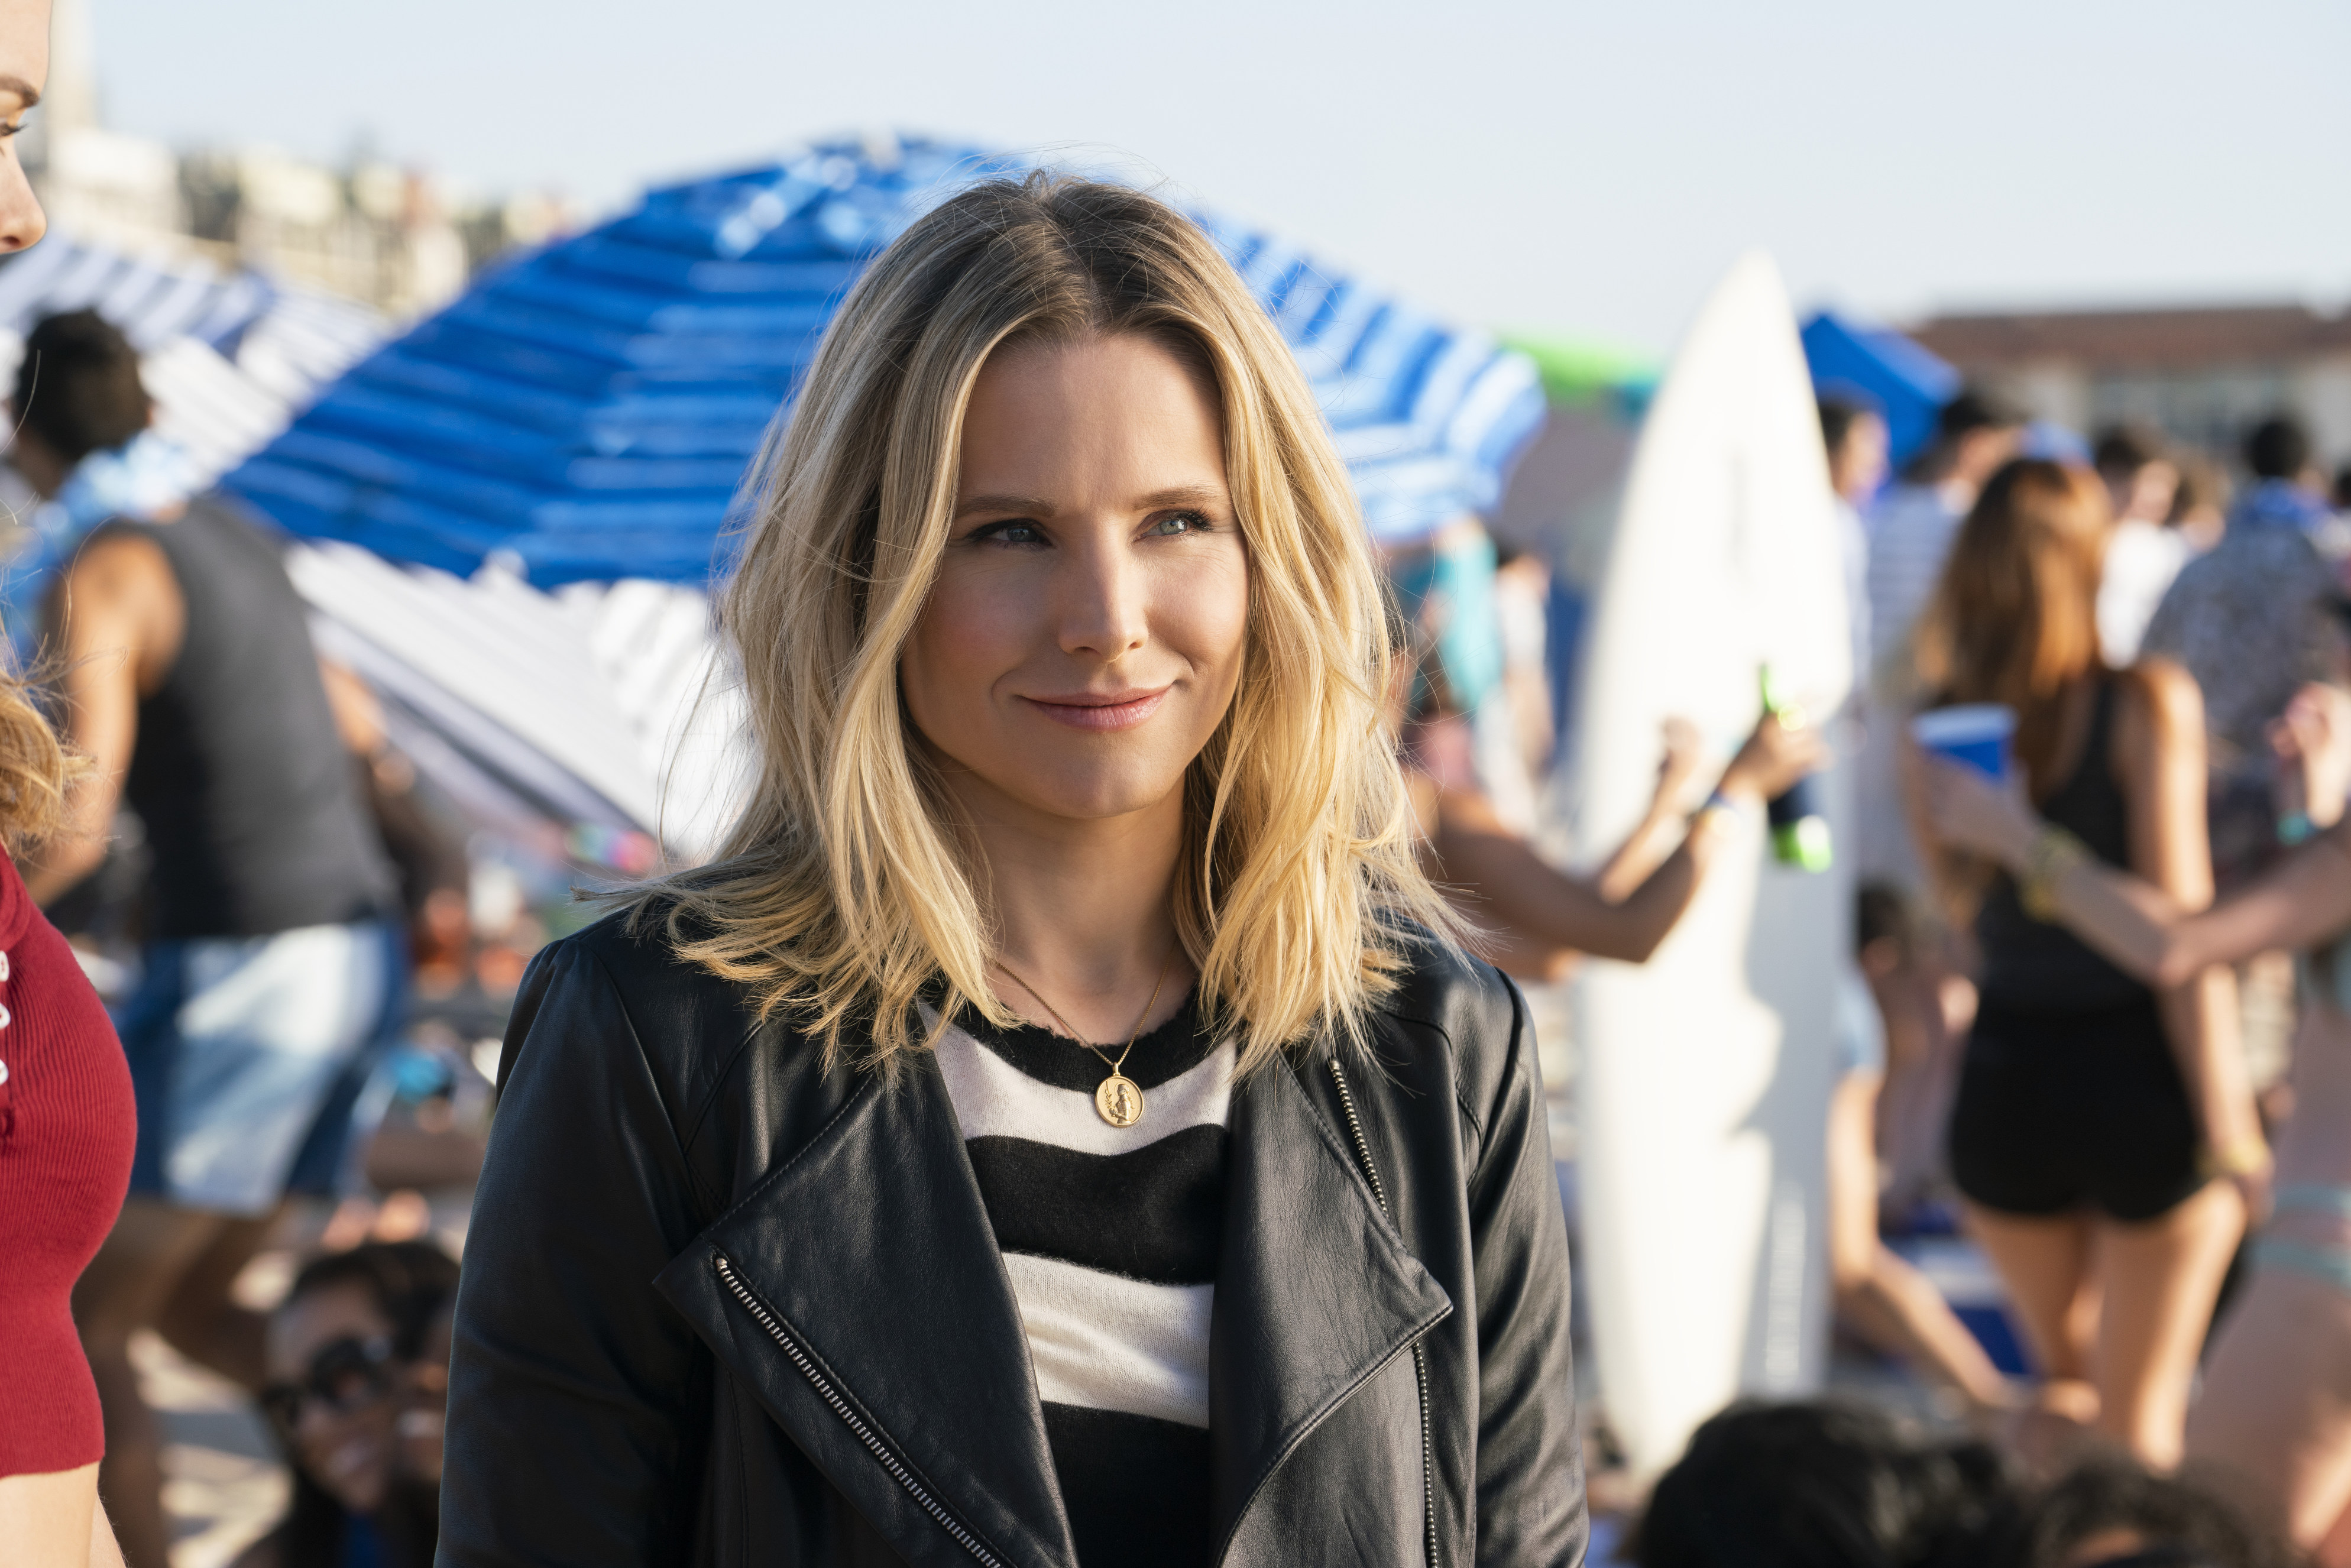 'Veronica Mars' Review: Gritty Revival Doesn't Pander to Fandom – It's Darker and Better (Spoiler-Free)